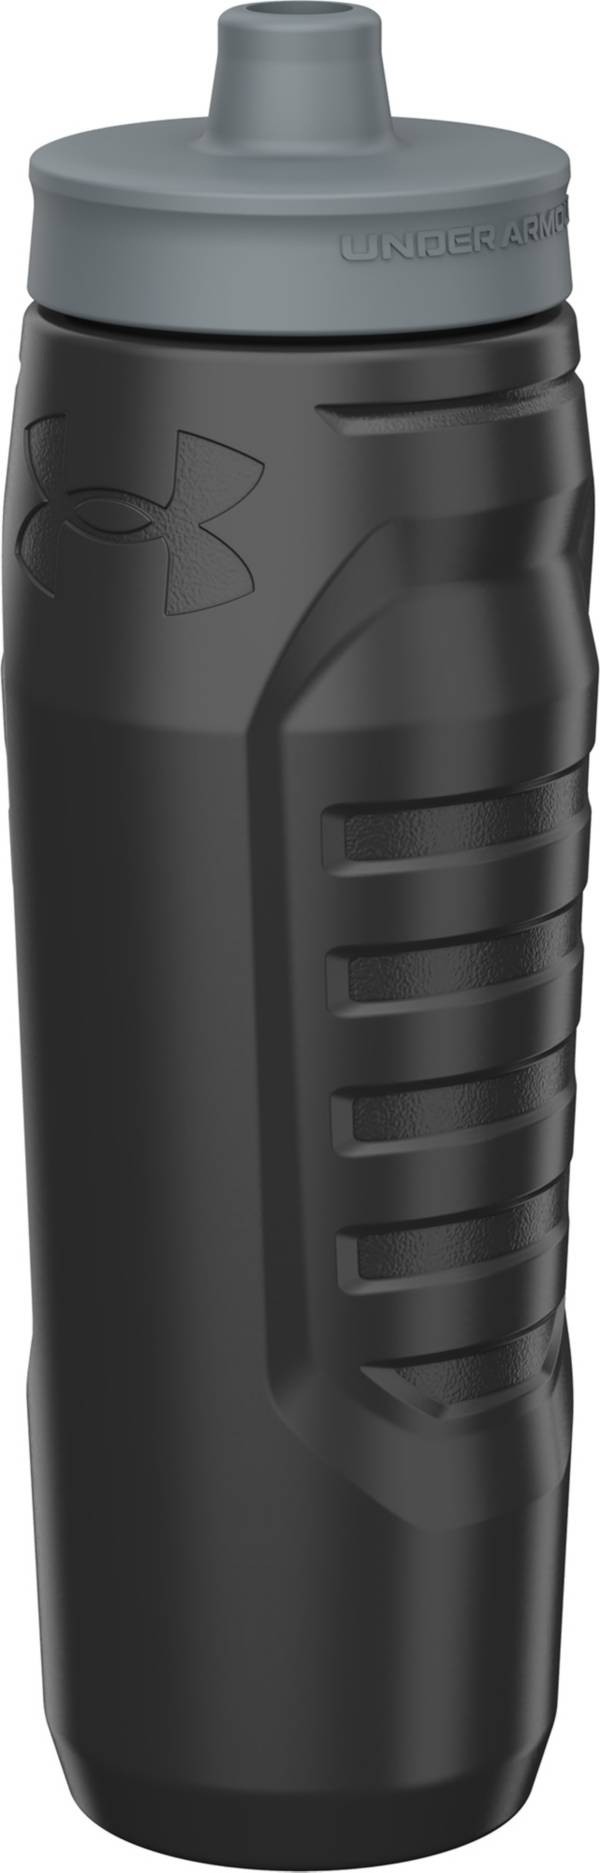 Under Armour 32 oz. Sideline Hard Squeezable Water Bottle product image